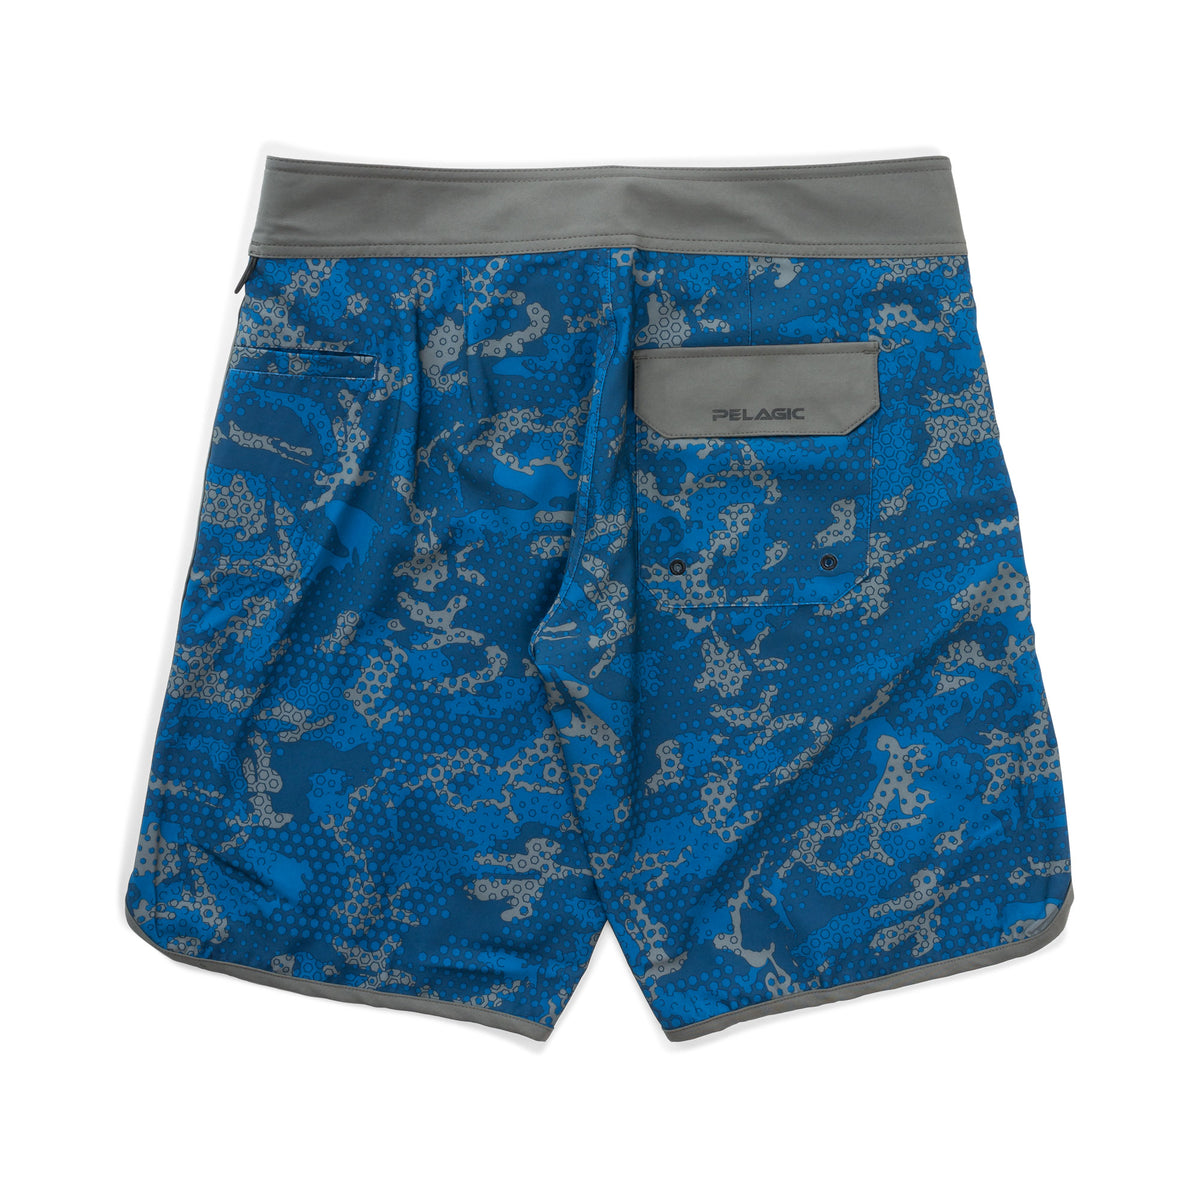 Wedge Boardshorts Big Image - 2